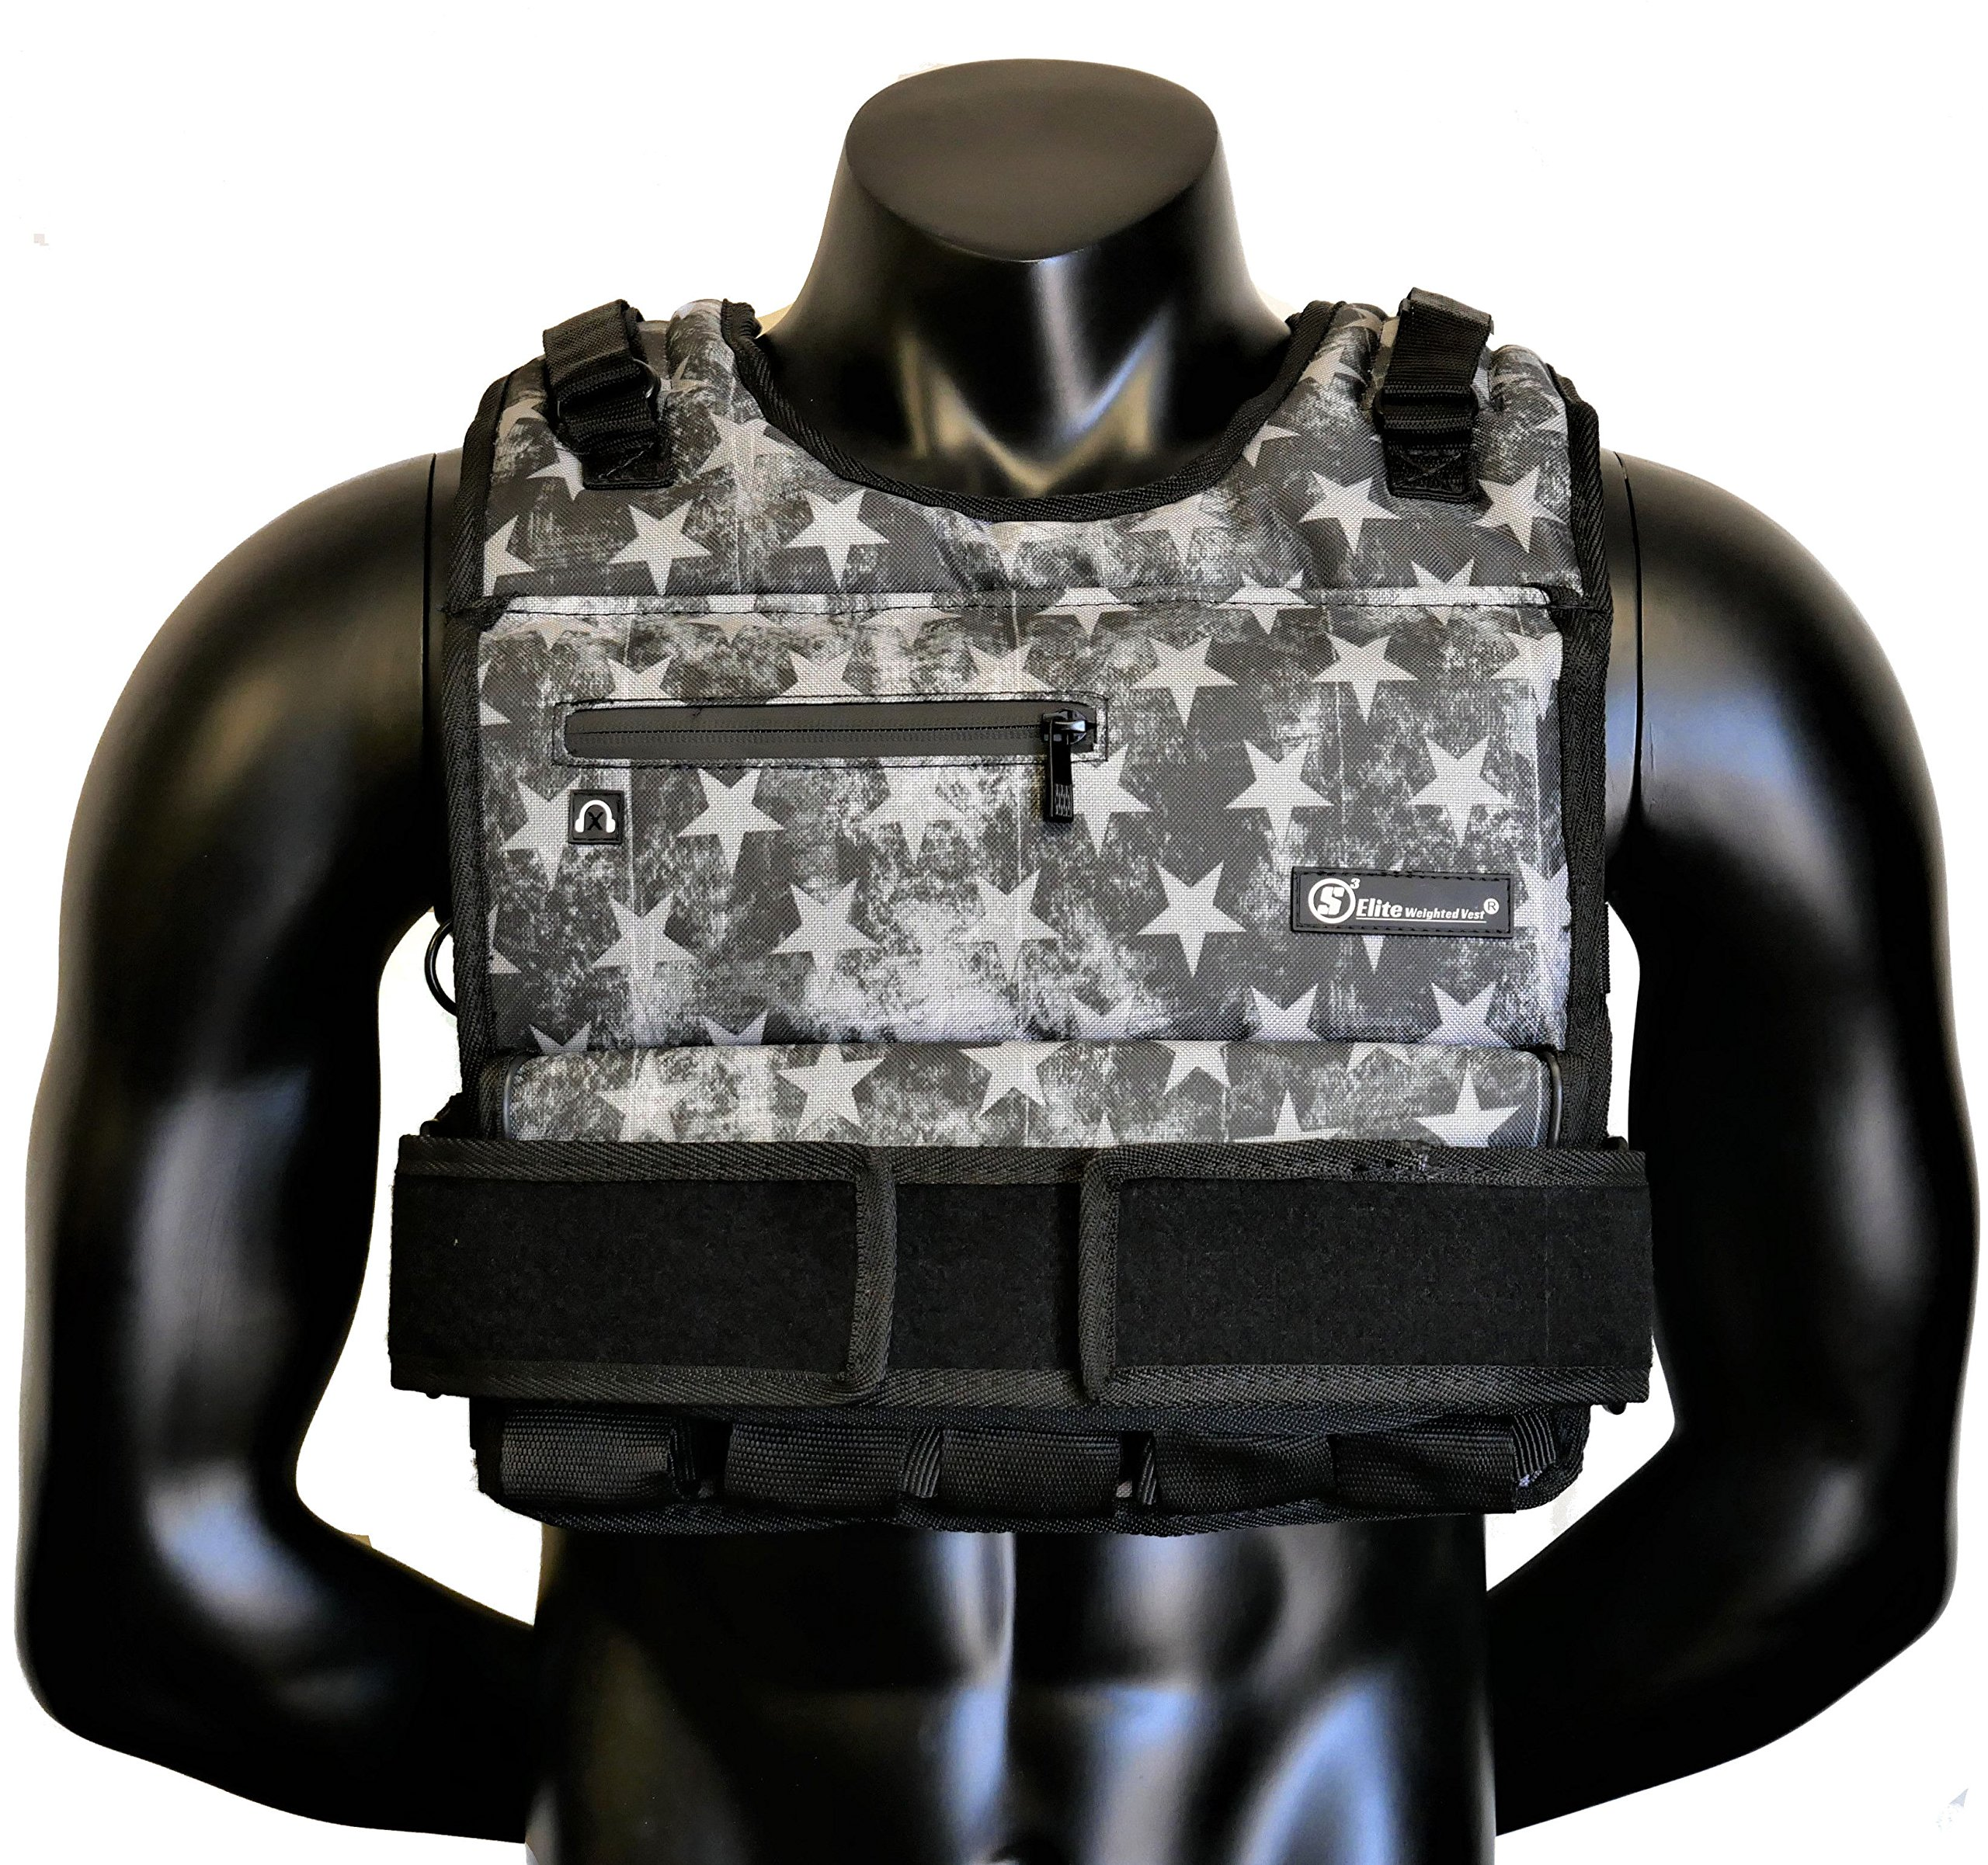 Strength sport systems Weight Vest (Short) - Premium Quality - Best for Cross fit Training - Running - Jogging - Fully Adjustable (S pro Weight Vest) (Elite II - S.T Camo, 80lbs(Iron bar Set)) by Strength sport systems